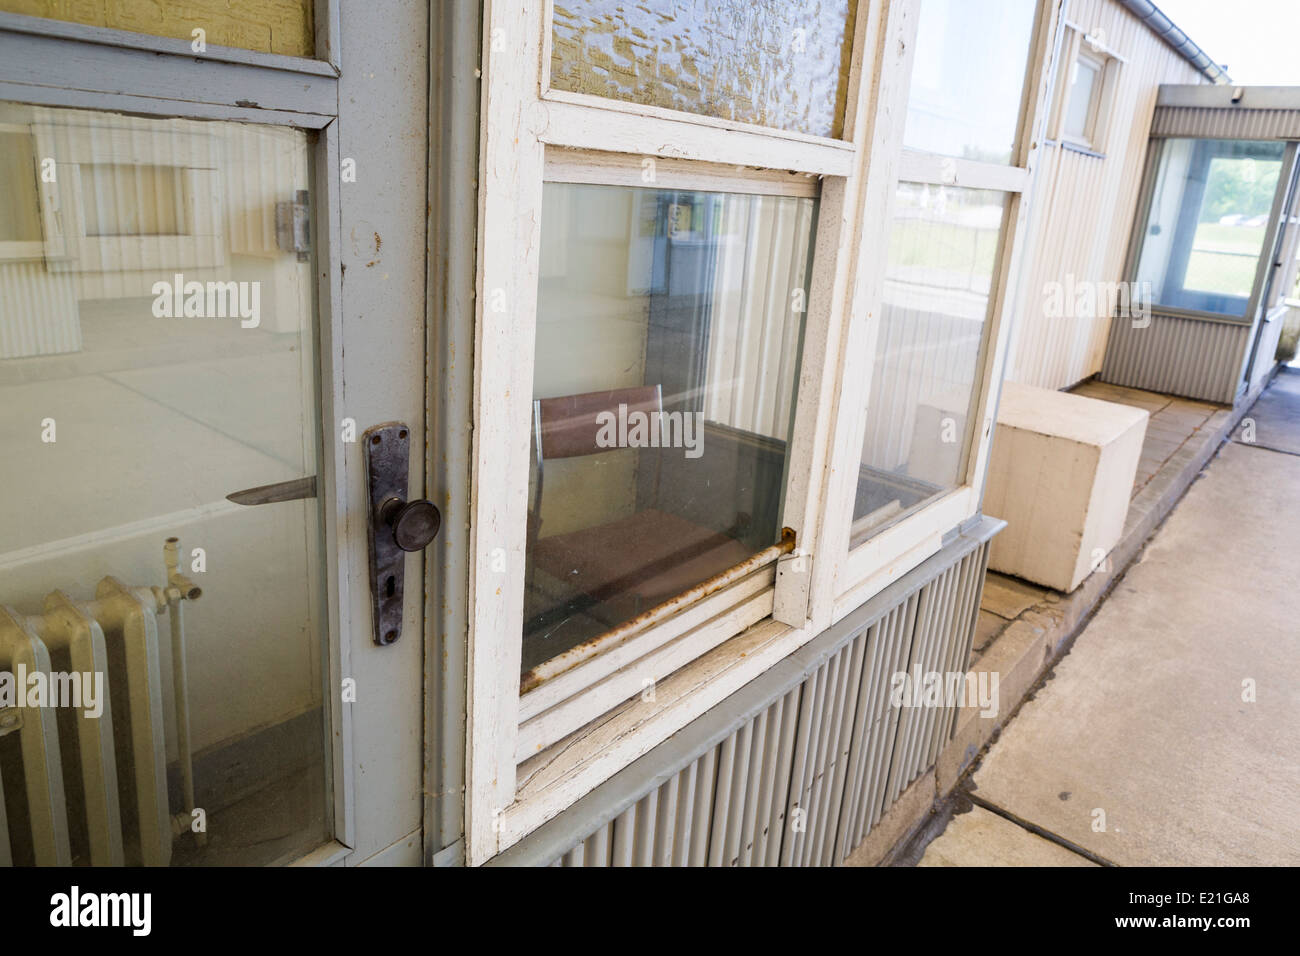 Old border crossing museum between west and east at Helmstedt-Marienborn in Saxony-Anhalt - Stock Image